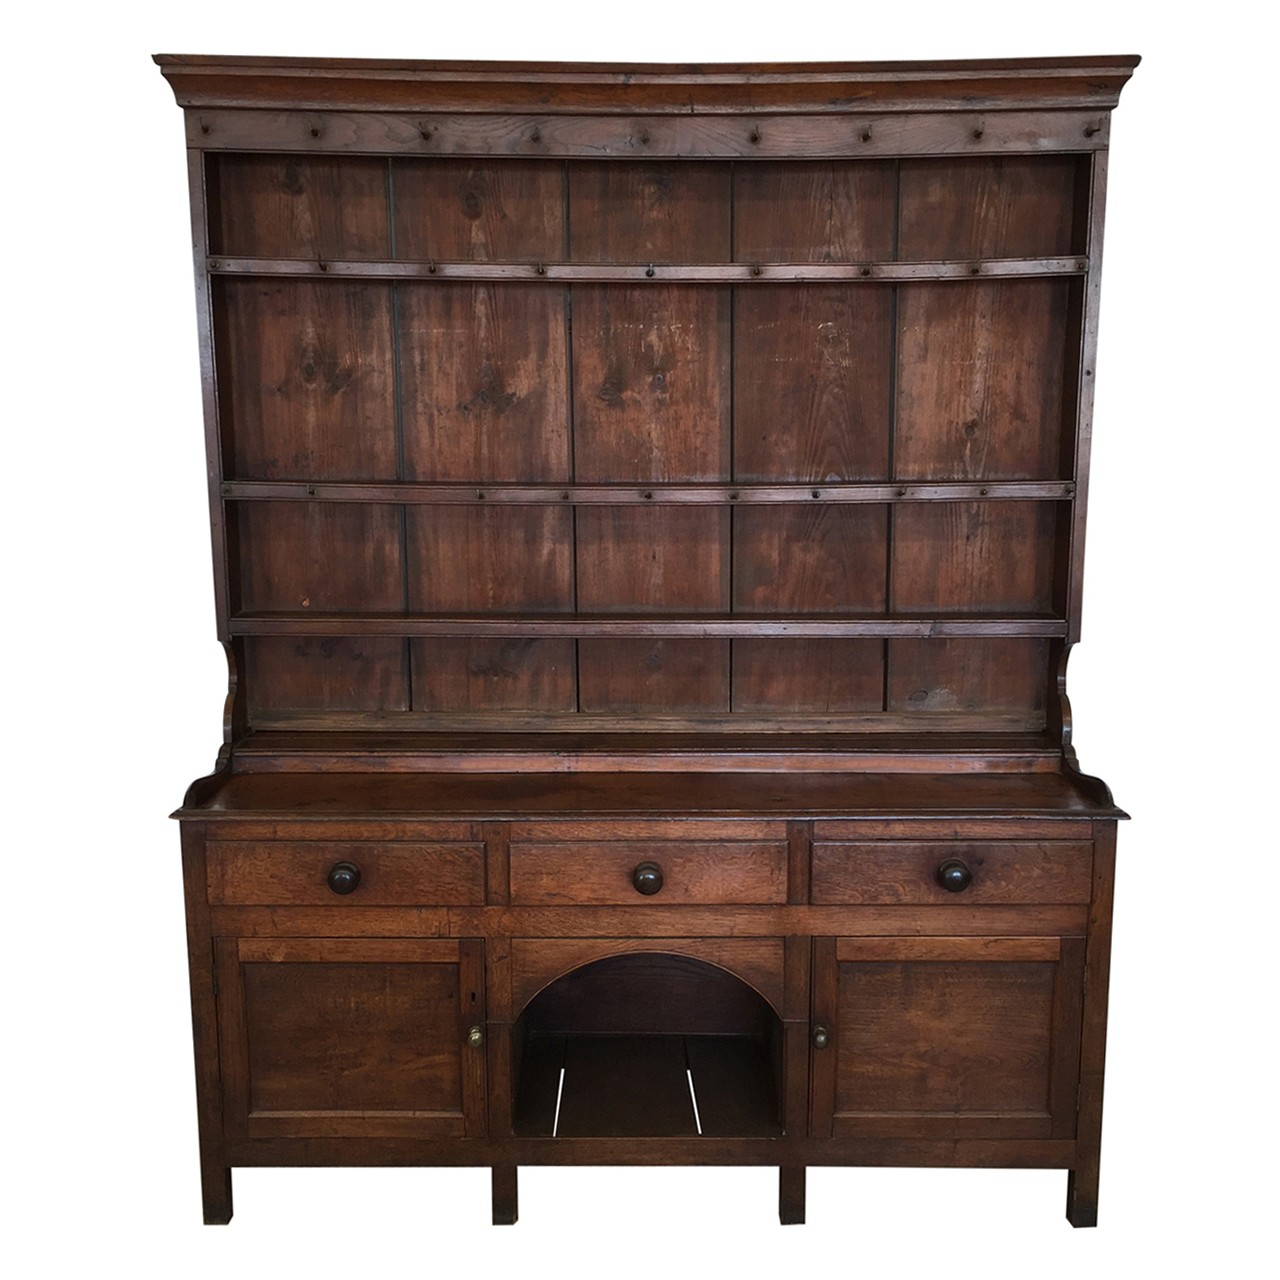 18th century Welsh oak dresser with three drawers and dog kennel.